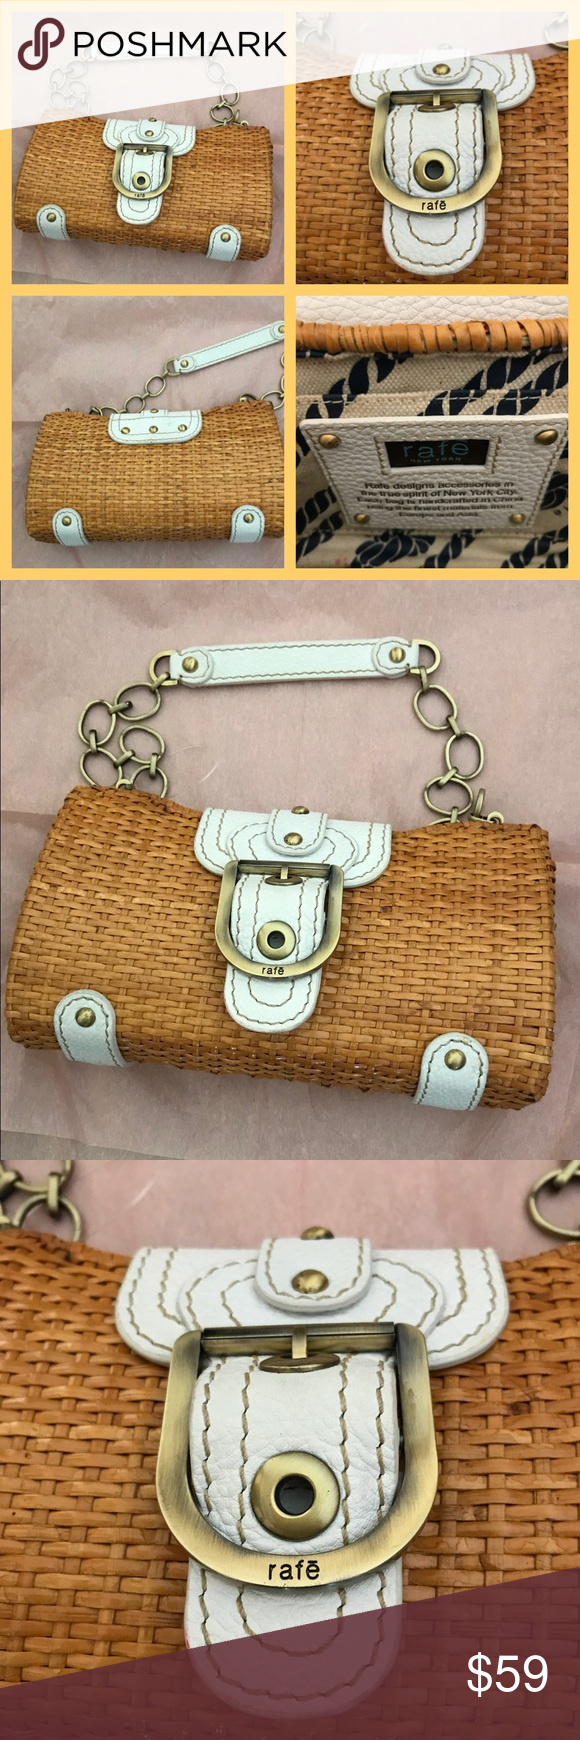 """315d858349 Authentic Rafe NY bag just added! This is a rare wicker and leather bag by  Rafe. It measures 9"""" L x 5"""" H x 2 1 2"""" D. Leather and chain strap has ..."""